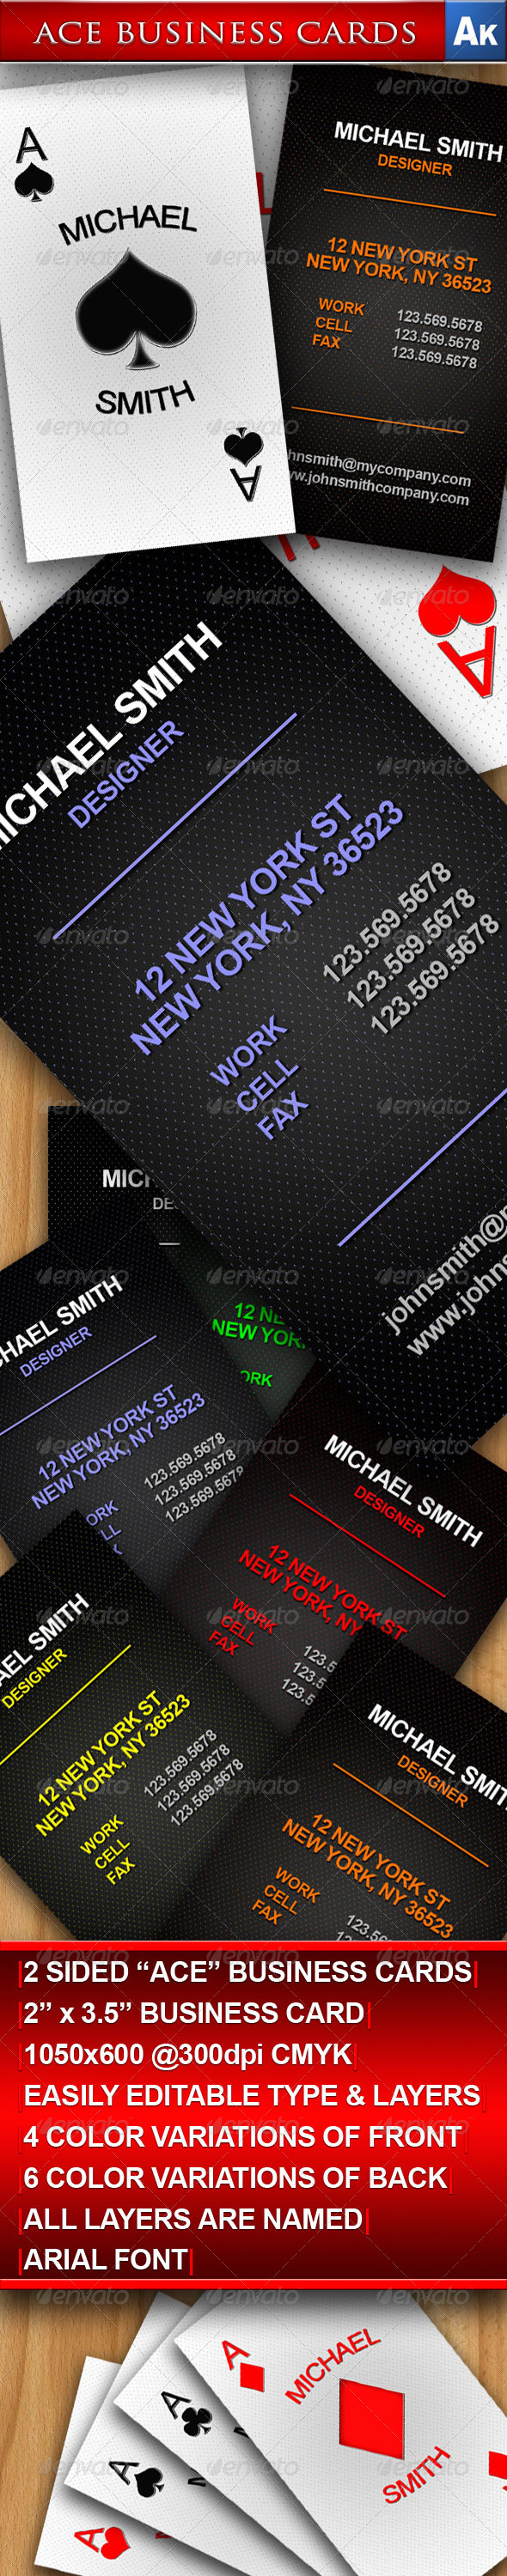 Ace Business Cards - Creative Business Cards